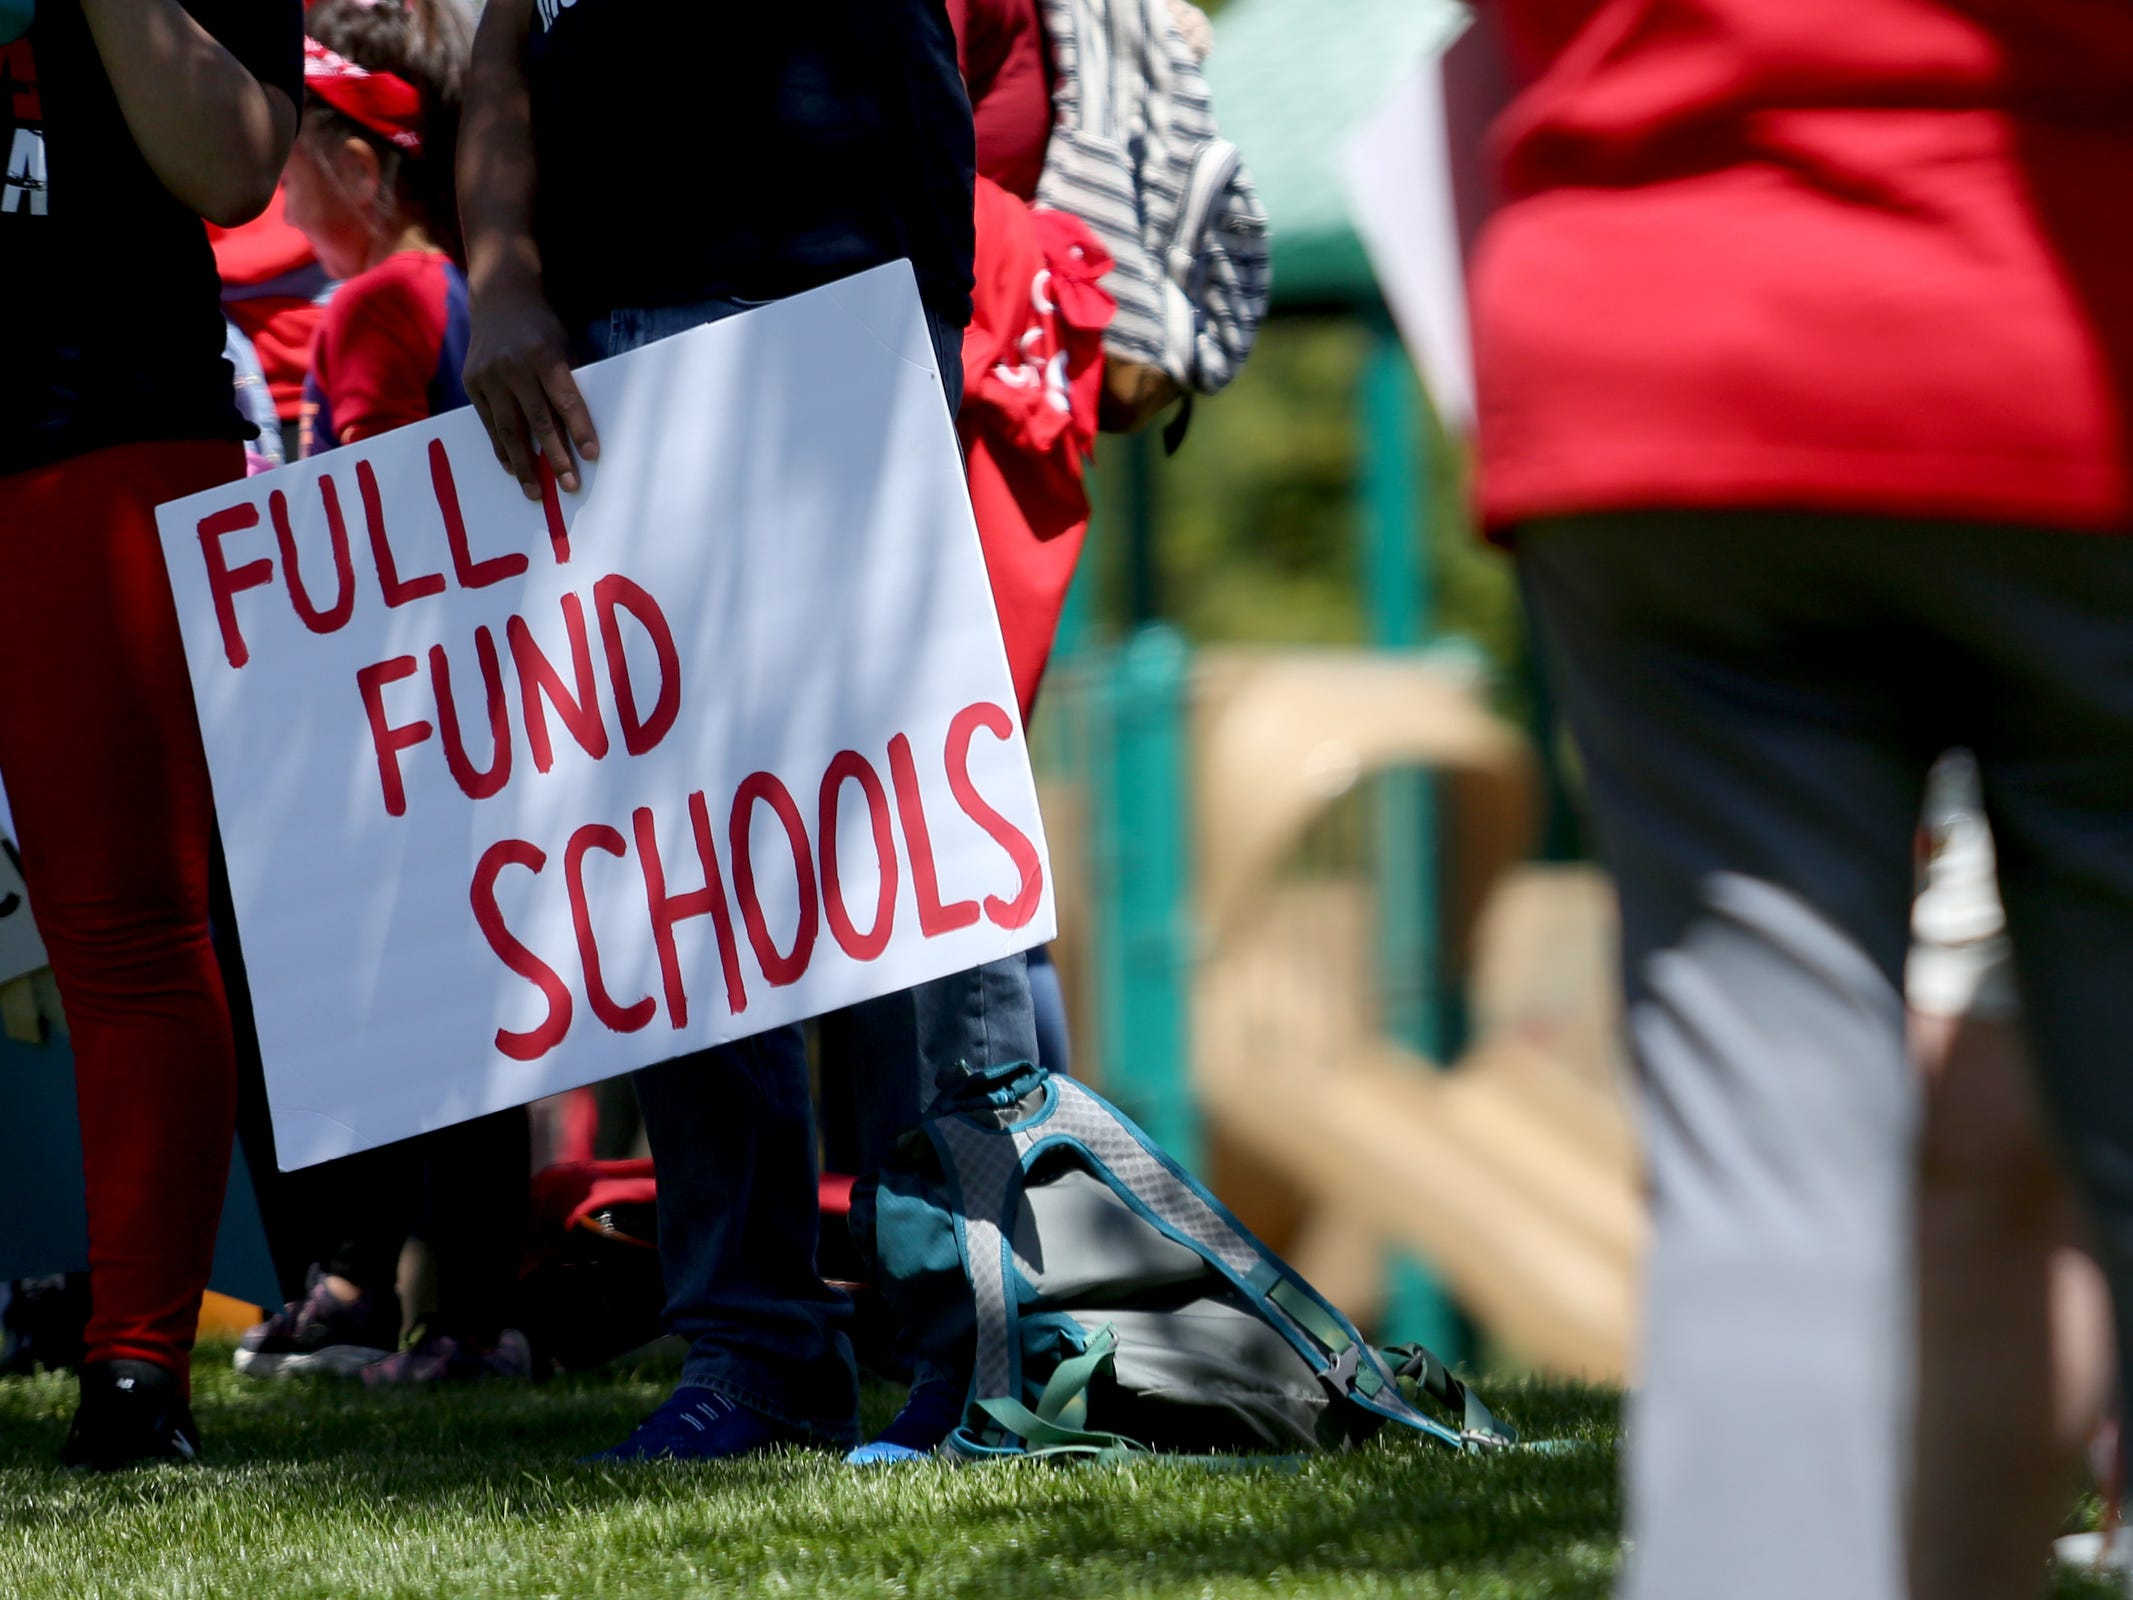 Thousands of teachers and education activists rally for a day of action starting at Riverfront Park in Salem on May 8, 2019. Schools across Oregon closed early or were closed for the day as teachers walked out to demand more school funding to address large class sizes, low graduation rates and other concerns.